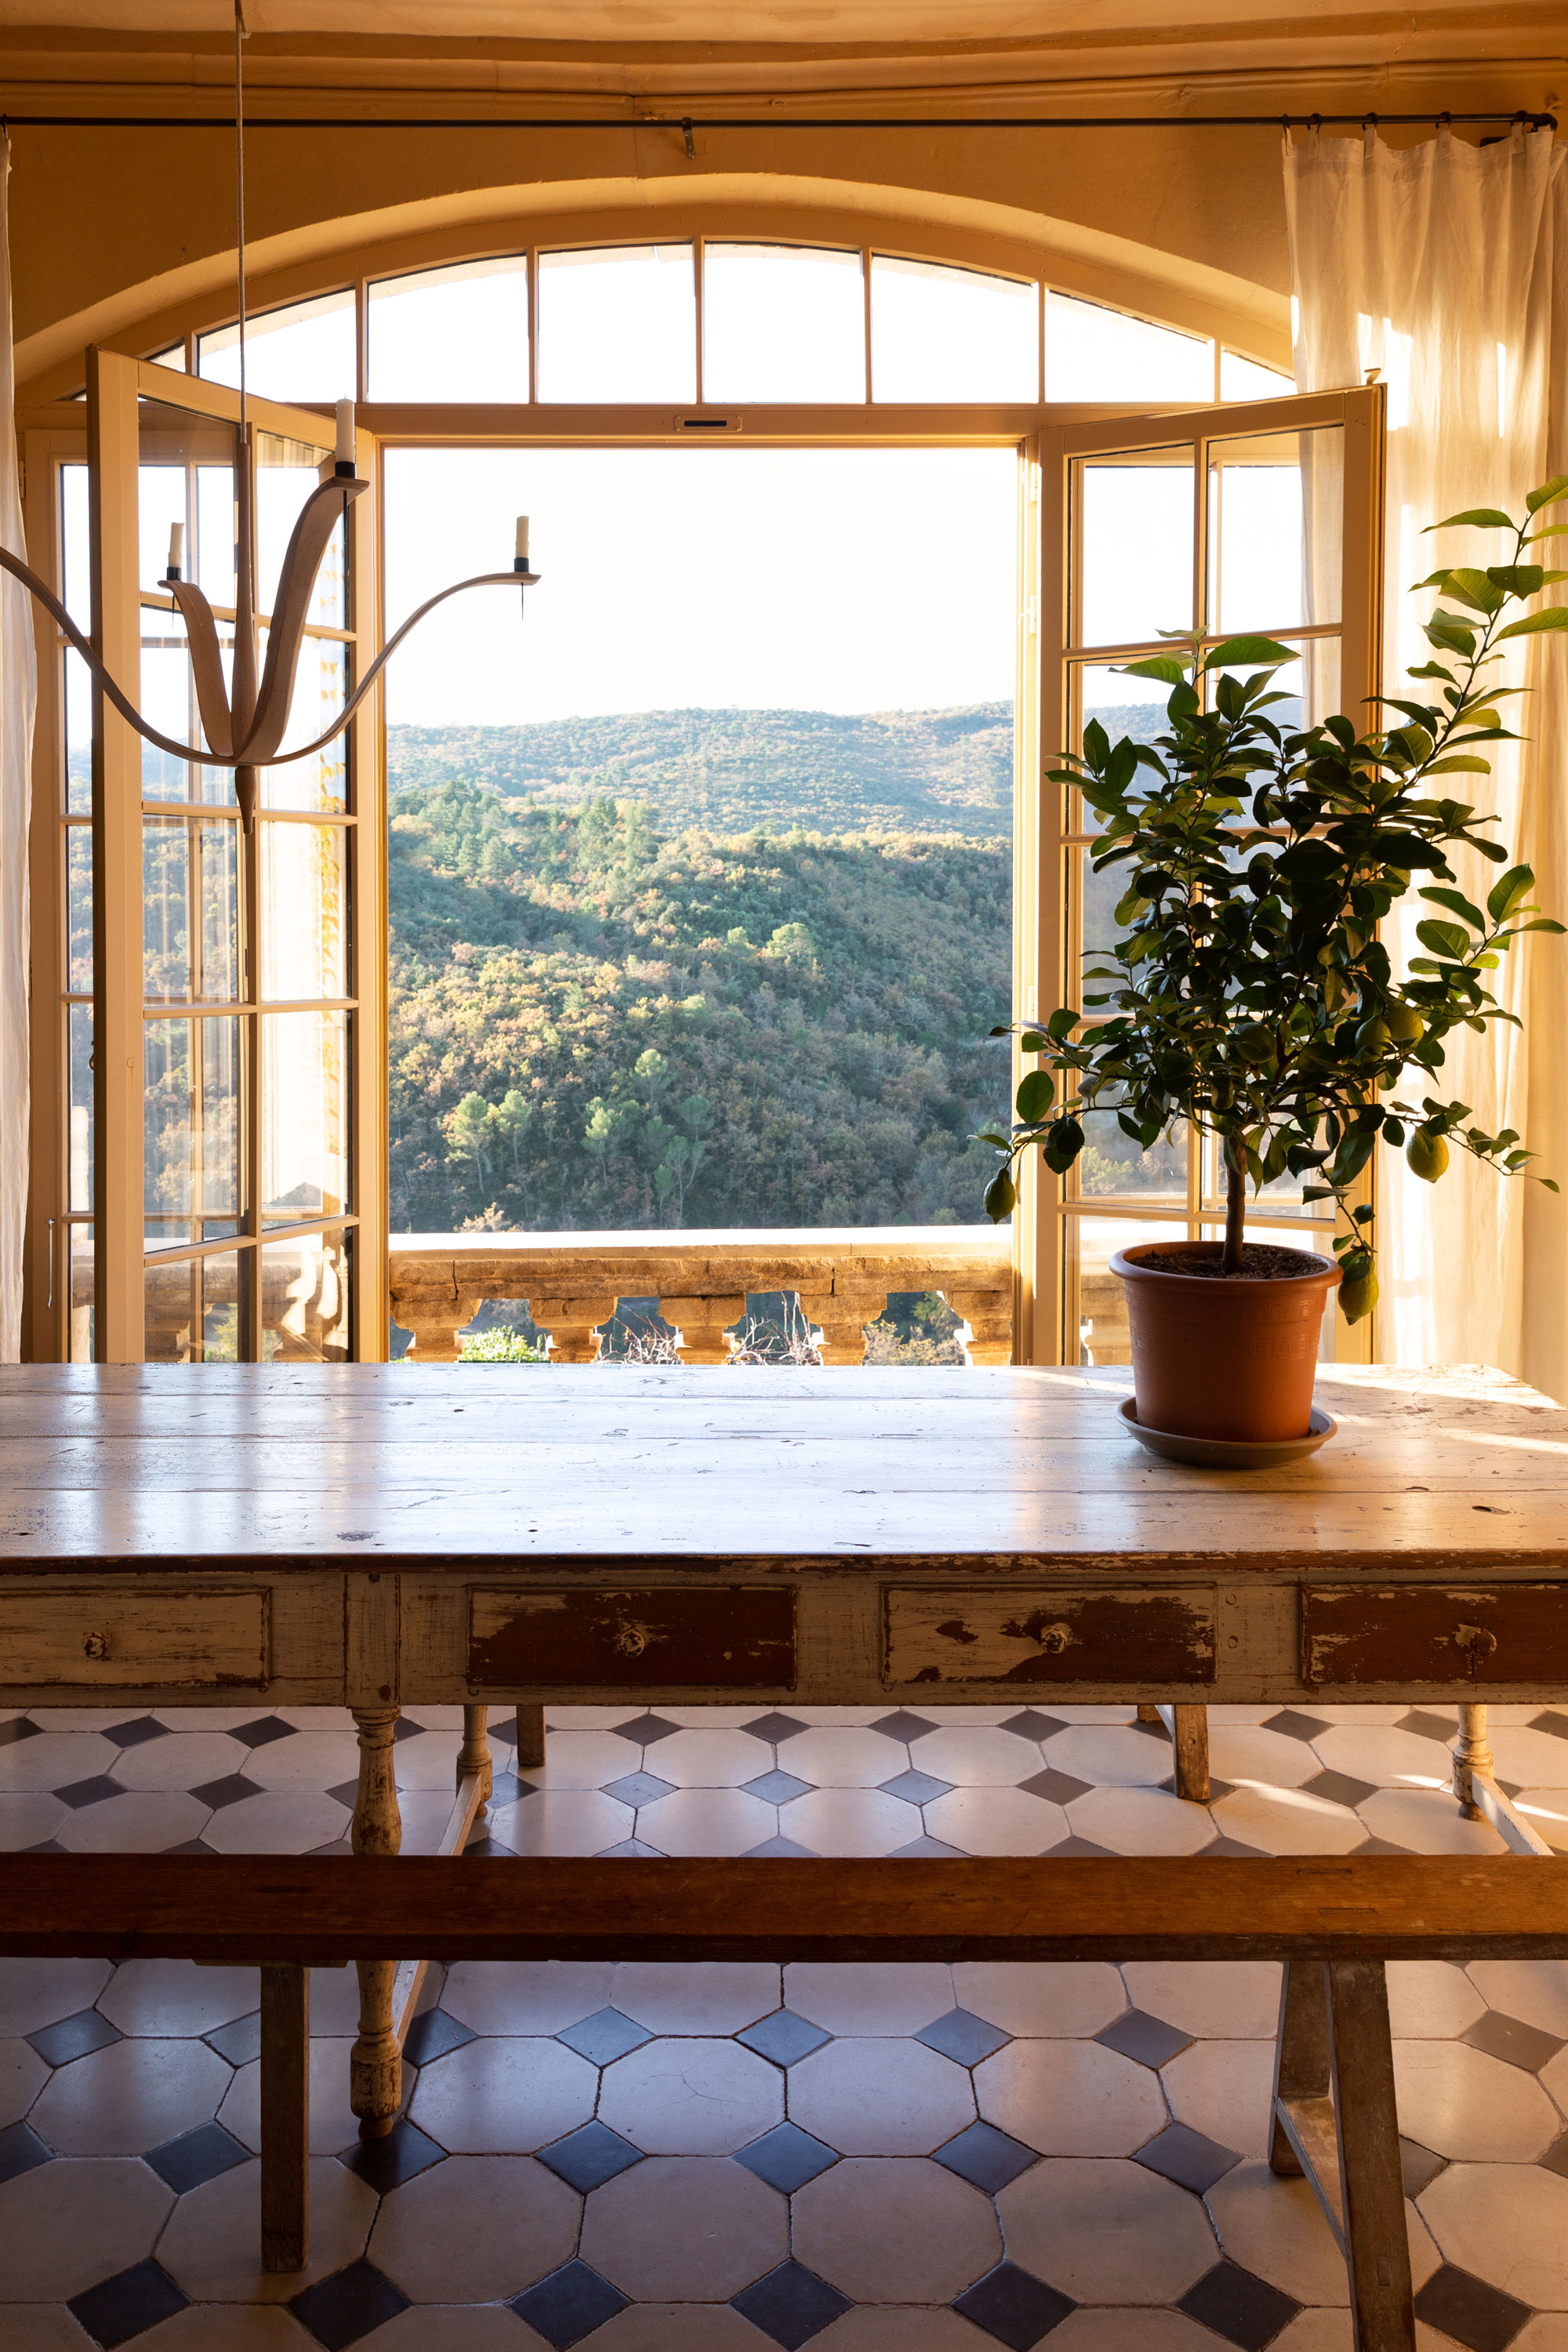 Looking out on the forests of the Luberon, Sharon and Paul's Bonnieux apartment is one of several created centuries ago by splitting up a regal country home. Many were constructed during the 14th century, when Pope Clement V, a Frenchman, moved the Catholic Church's headquarters from Rome to Avignon for 67 years.